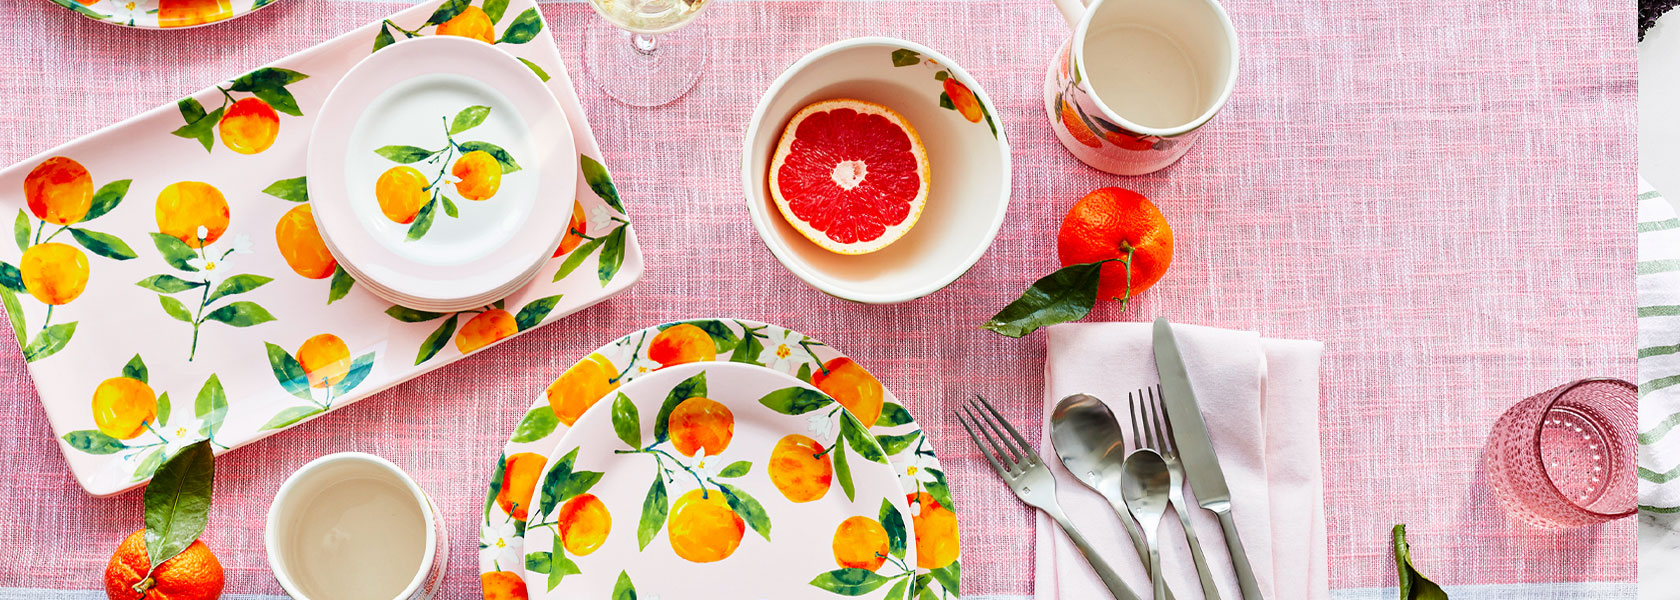 Lemon Dinnerware on pink tablecloth